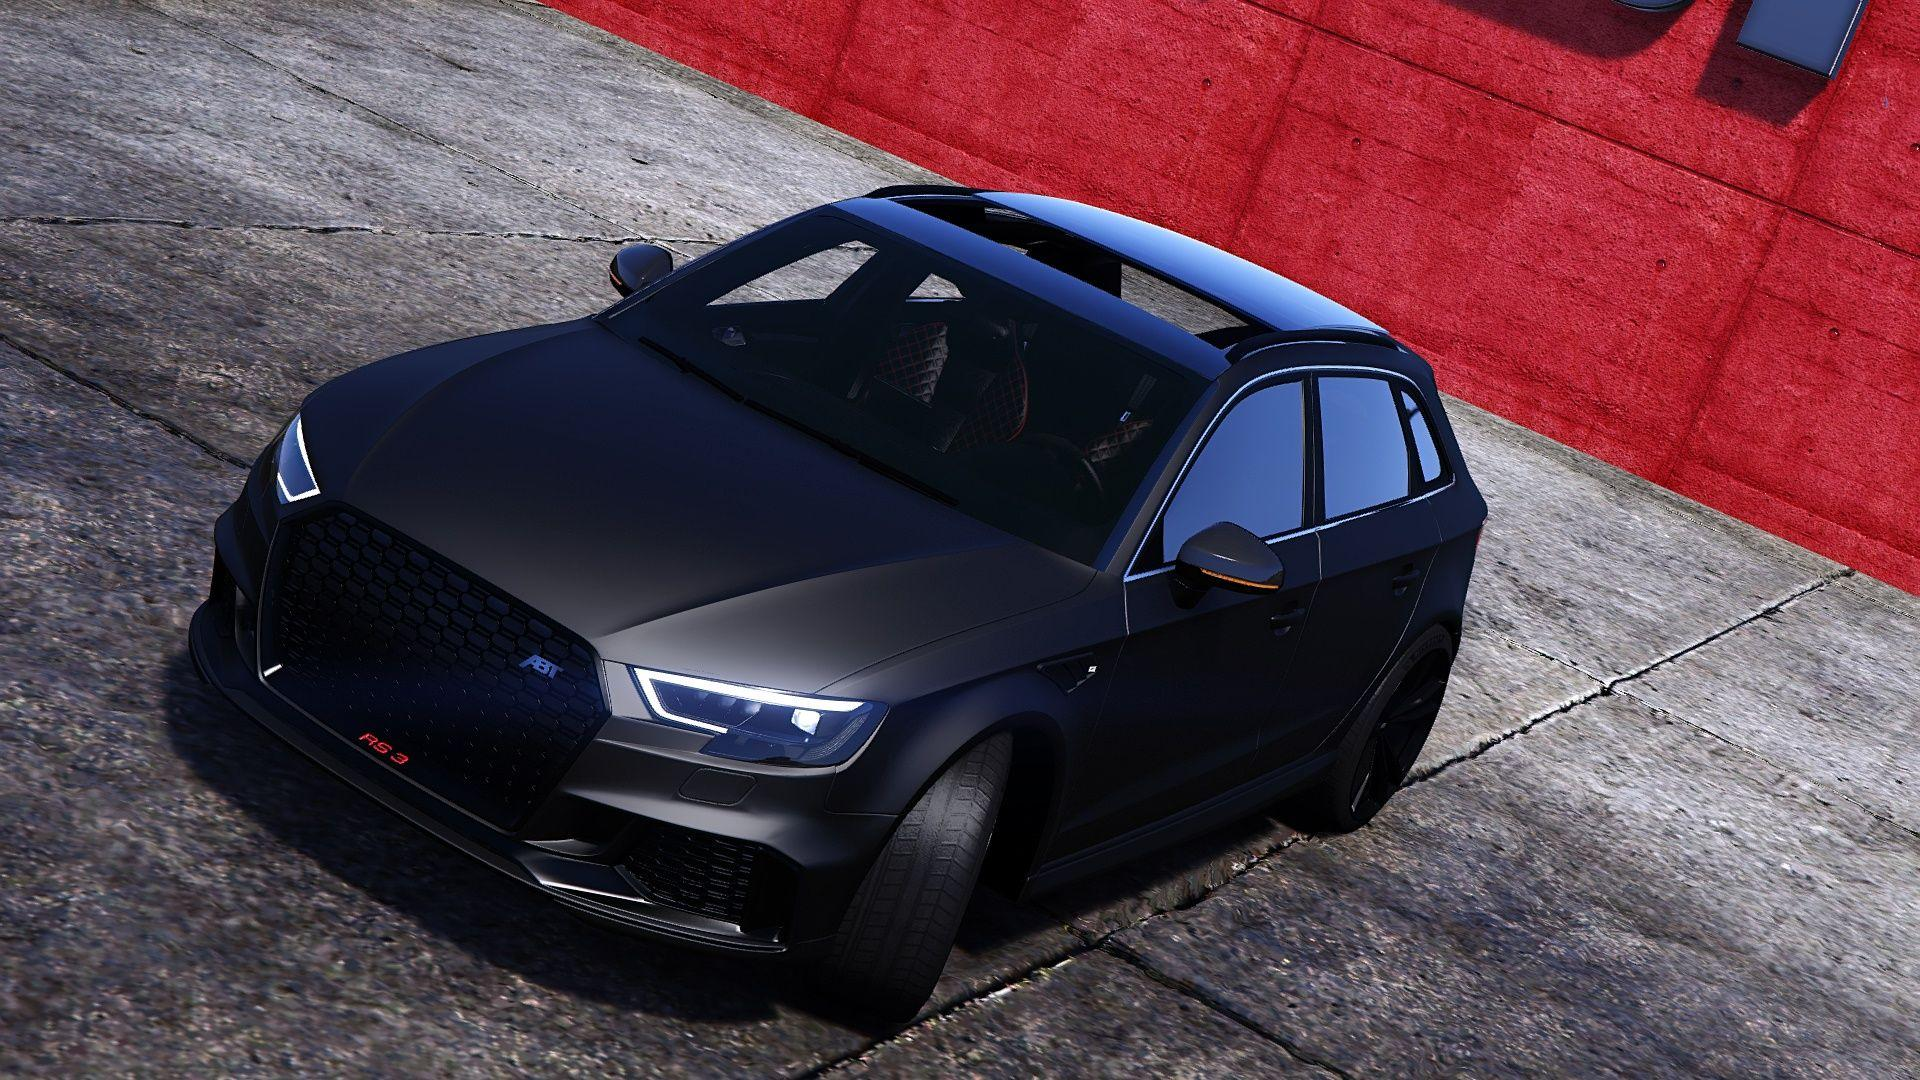 Audi rs3 Sportback 2018 [Add-on/Tuning/ABT] - GTA5-Mods.com